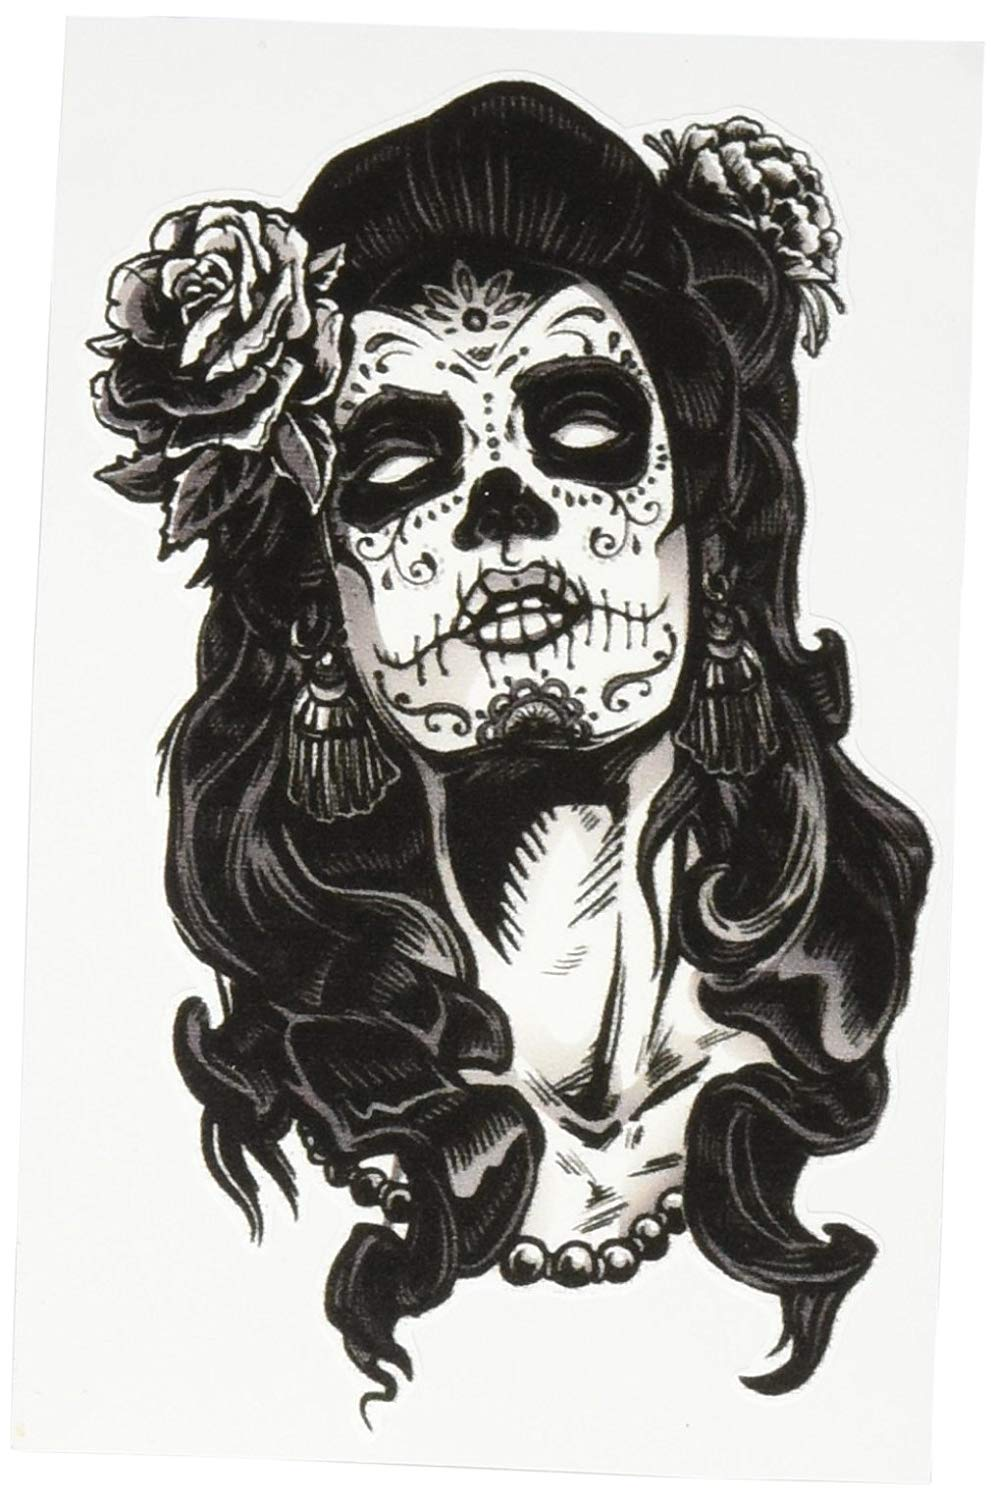 Dia de los muertos girly skull clipart black and white library DIA DE LOS MUERTOS WOMAN WITH SKULL AND ROSE BLACK WHITE Vinyl Decal  Sticker Two in One Pack (4 Inches Tall) black and white library